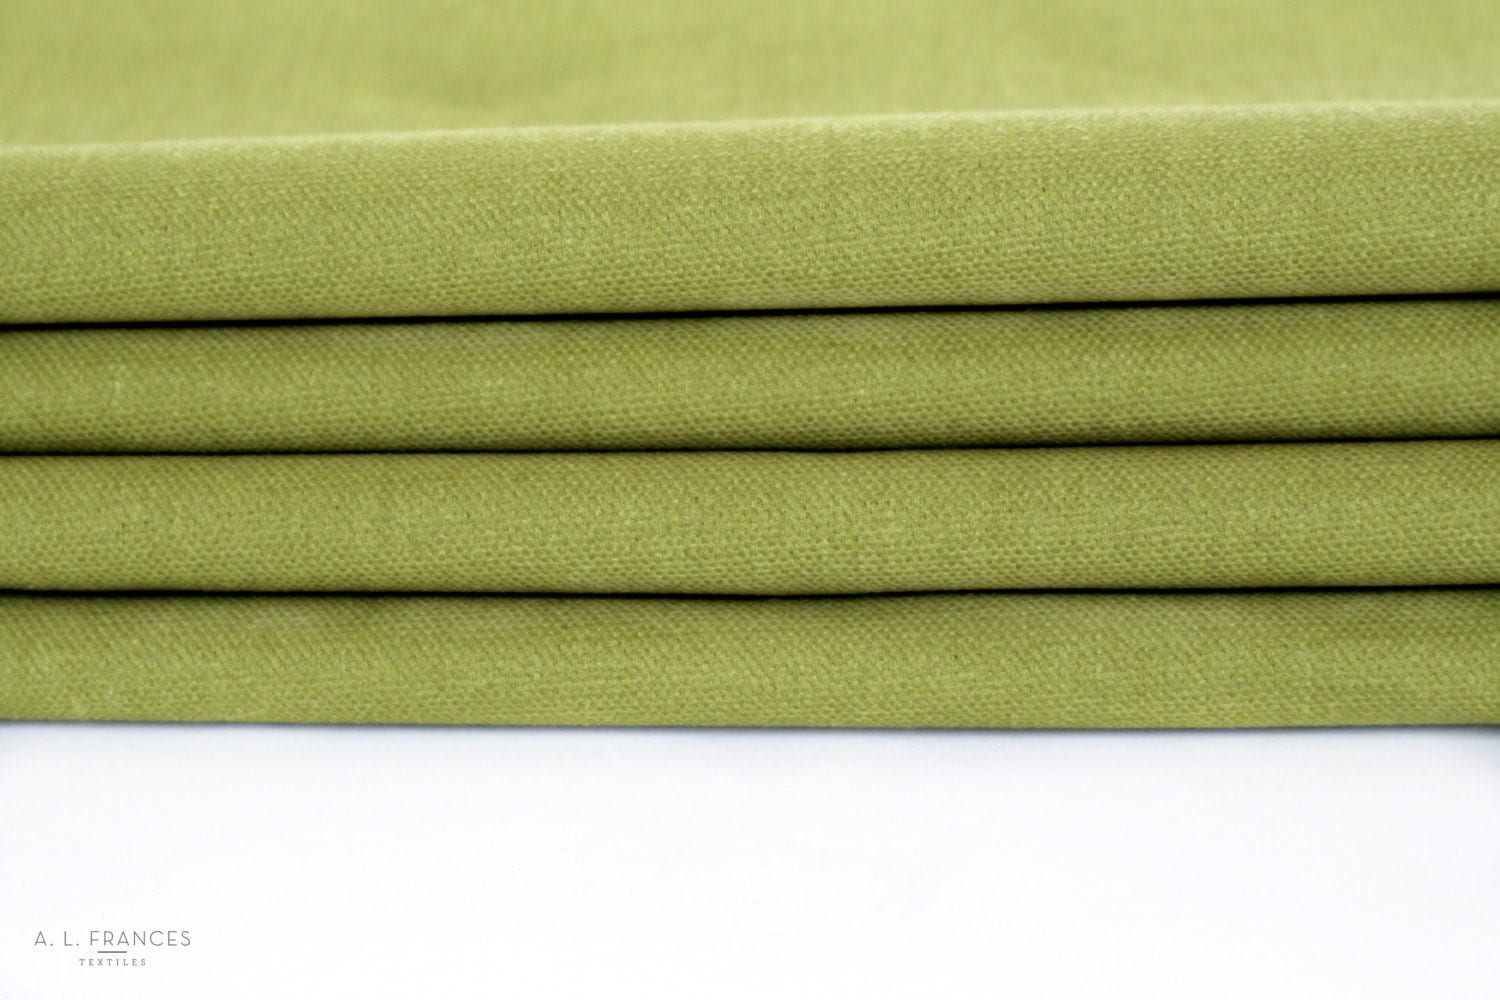 1 2 yard hand waxed cotton canvas fabric spring green 10oz from alfrancestextiles on etsy studio. Black Bedroom Furniture Sets. Home Design Ideas